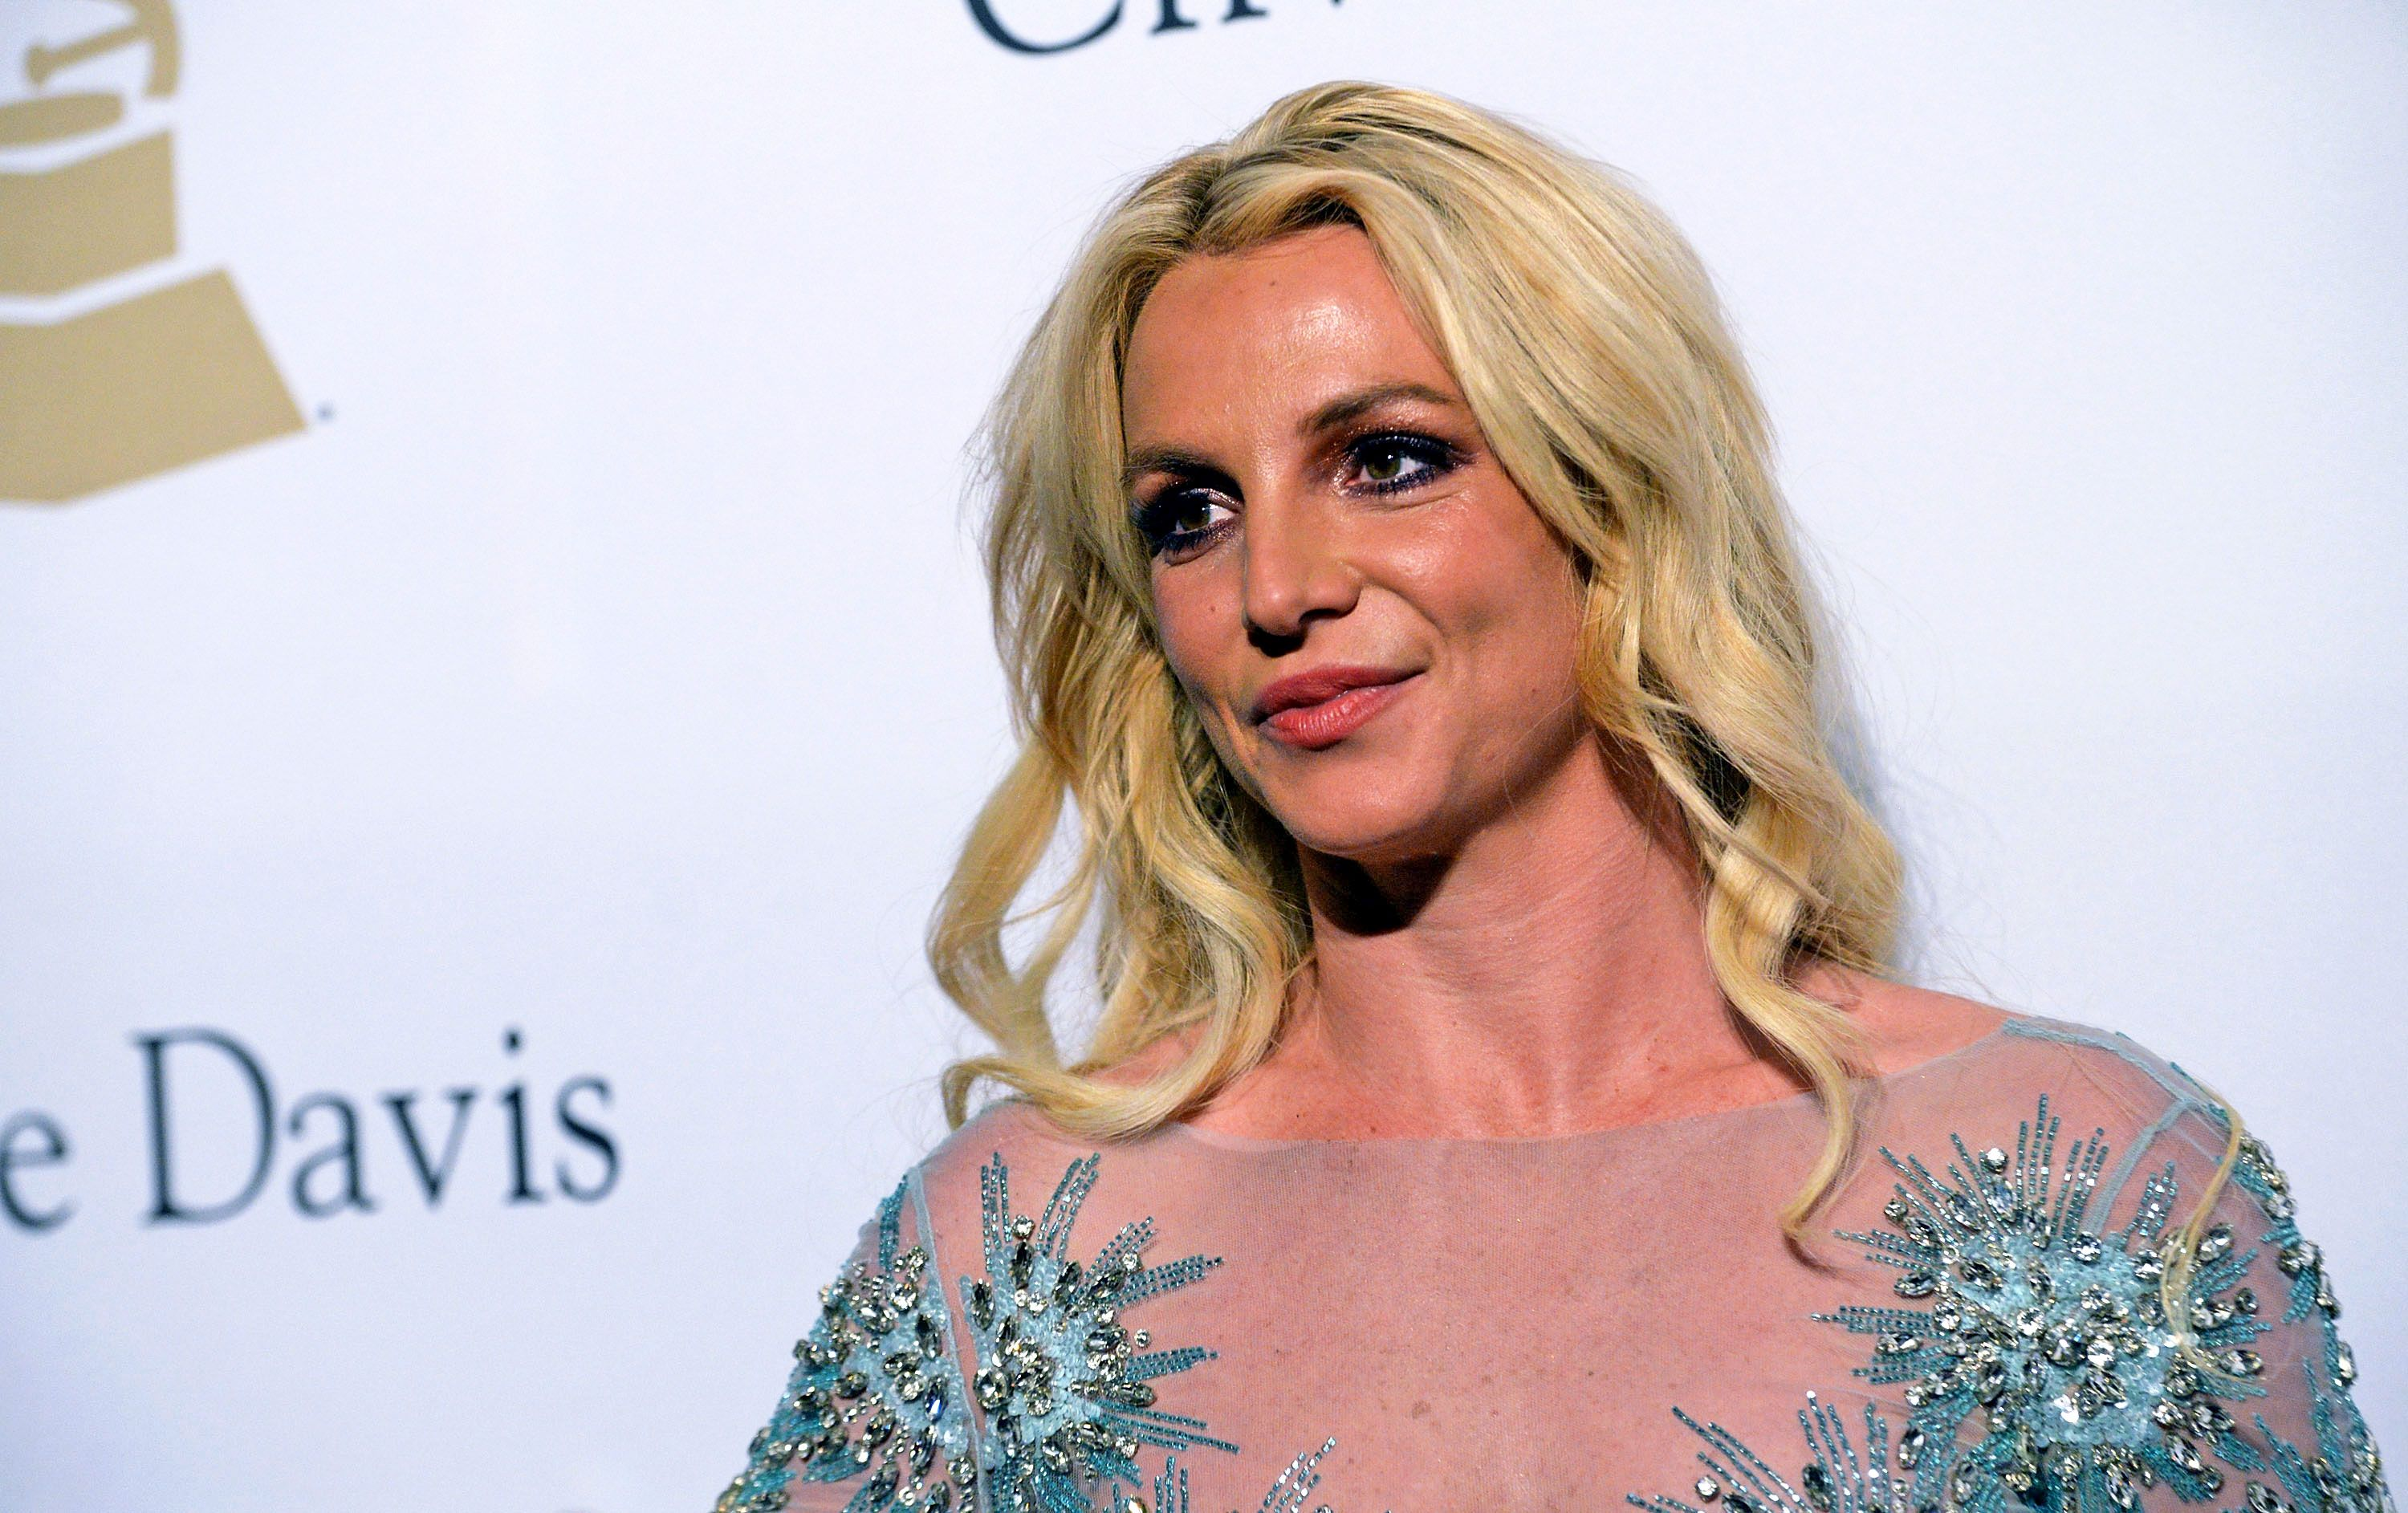 Britney Spears Net Worth, Lifestyle, Biography, Wiki, And More